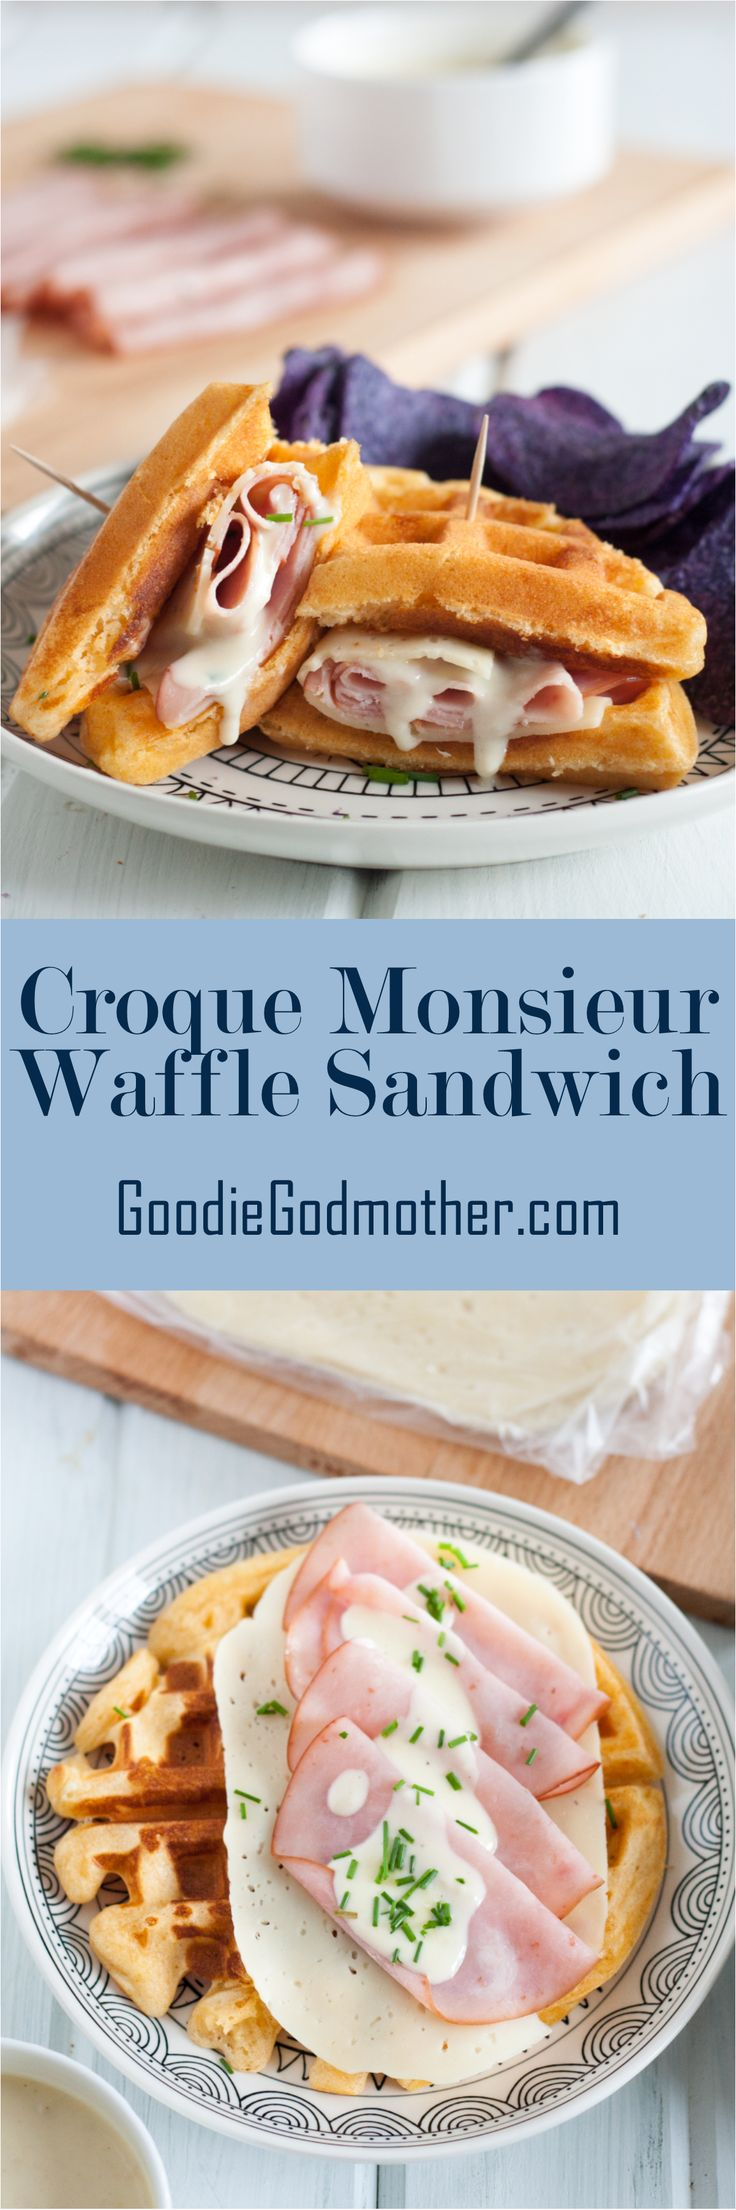 A Croque Monsieur Waffle Sandwich is a great alternative to traditional brunch dishes. It also makes a great lunch and a unique breakfast-for-dinner dinner idea! Get the easy recipe on GoodieGodmother.com